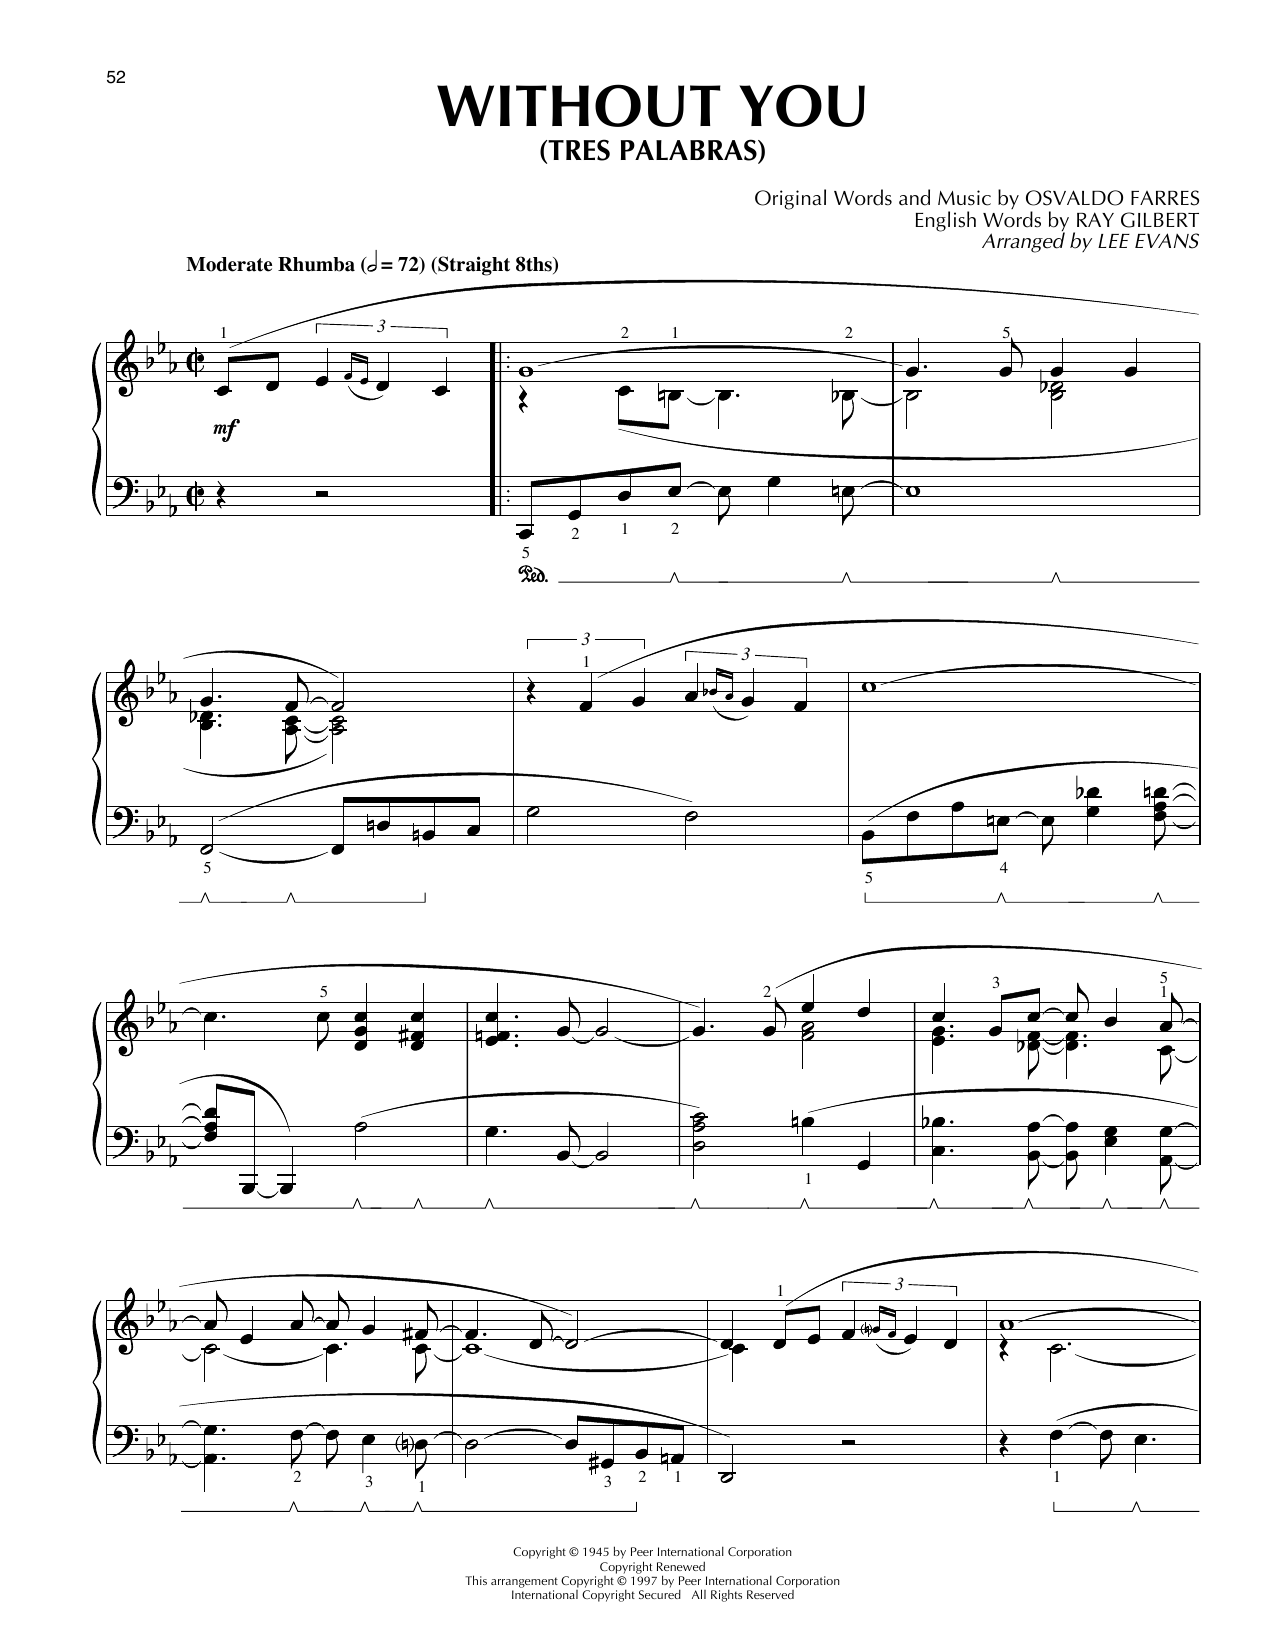 Nat King Cole Tres Palabras (Without You) sheet music notes and chords. Download Printable PDF.